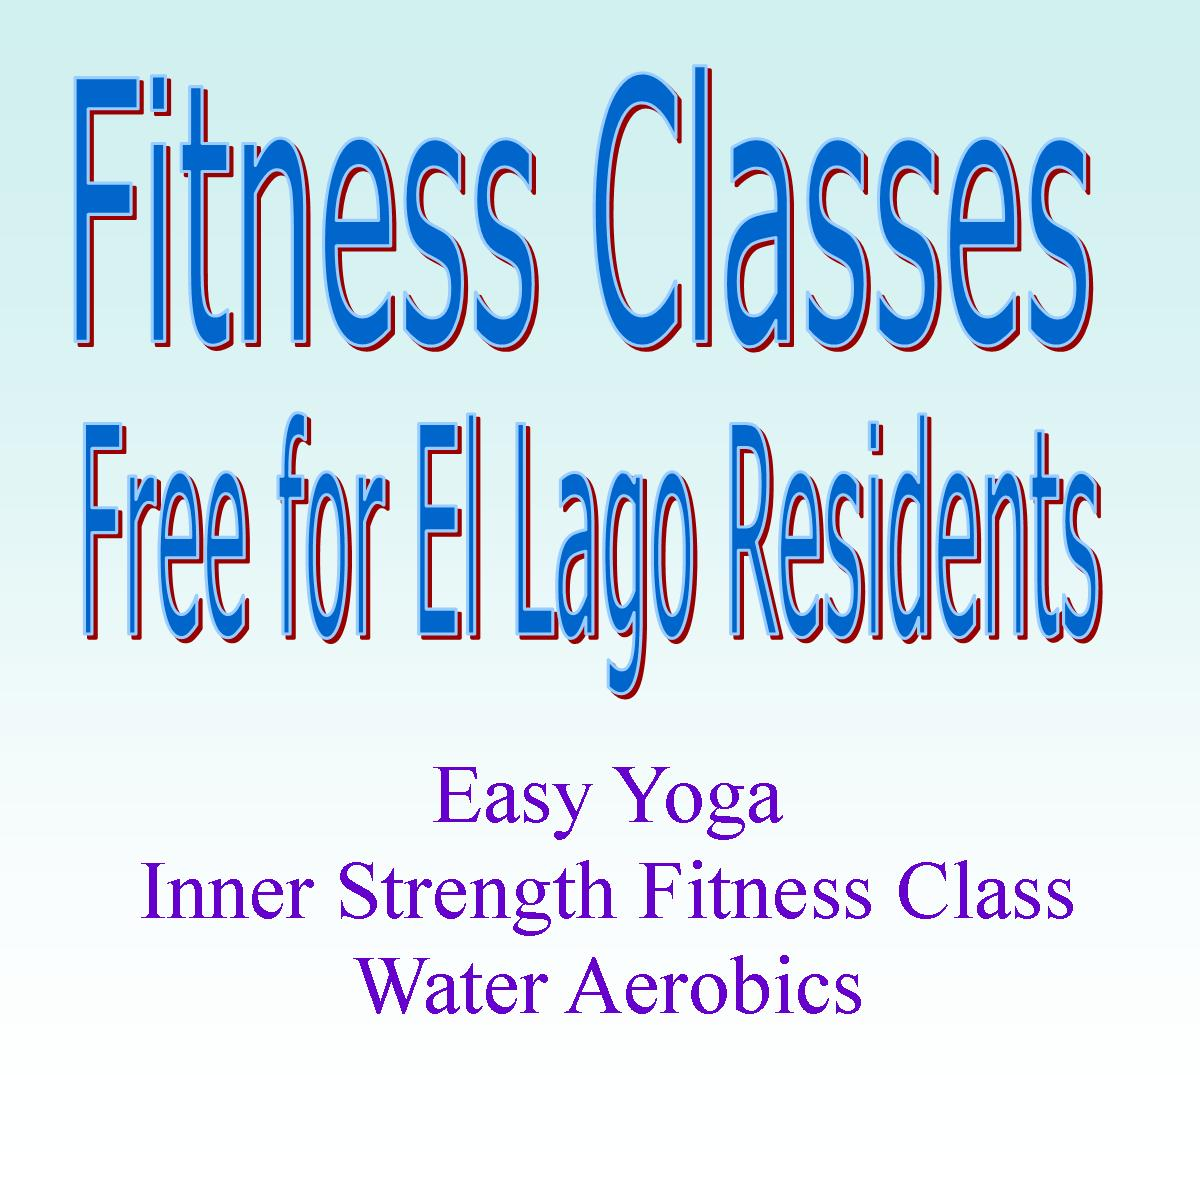 Fitness Classes: Free for El Lago Residents, easy yoga, inner strength fitness class, water aerobics